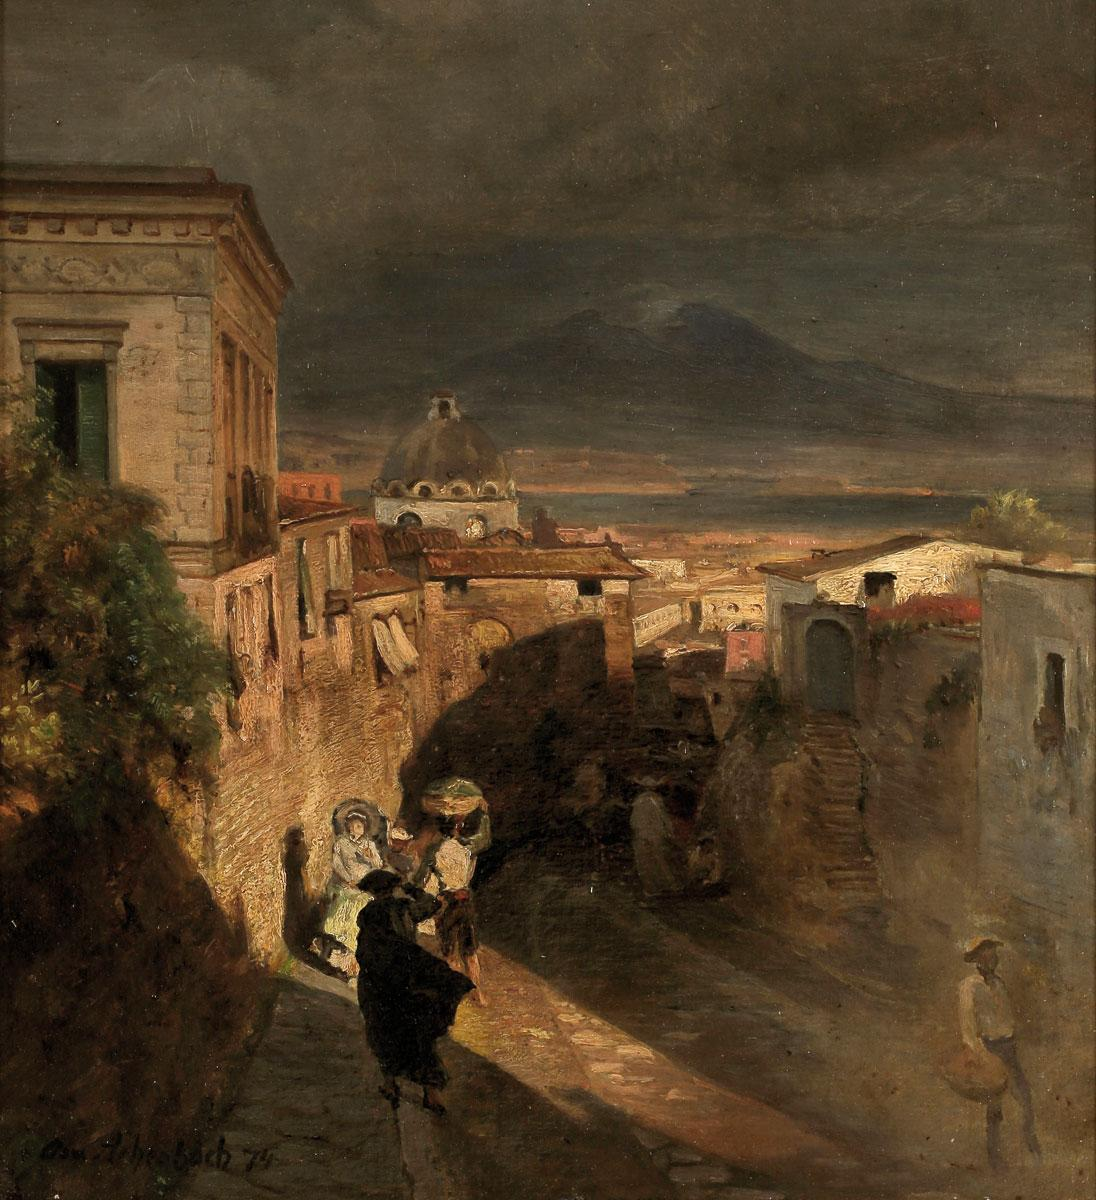 与你的Vesuvius一同看到老城的人你看到那不勒斯的旧路子吗?_Alleyways of the Oldtown in Naples with View on The Vesuvius(also known as Altstadtgasse in Neapel mit Blick auf den Vesuv)-奥斯瓦尔德·阿肯巴赫